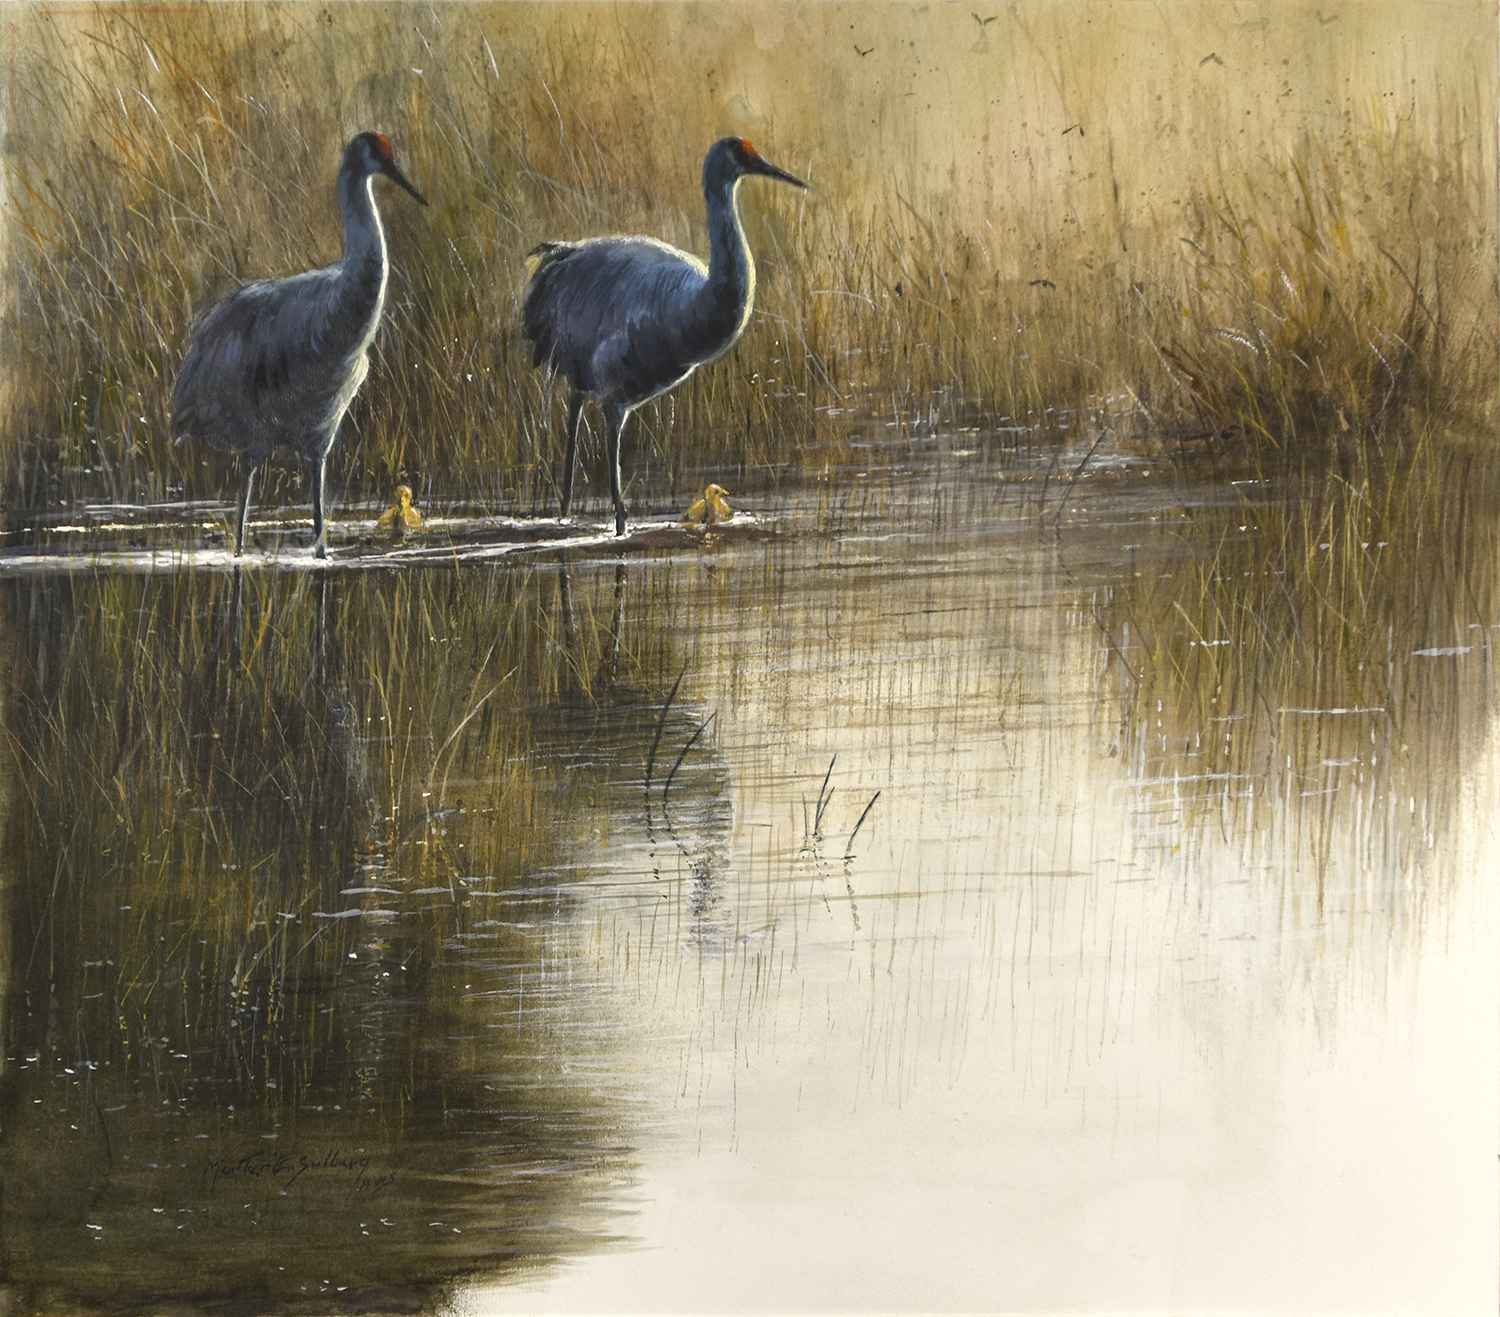 Late Afternoon by  Morten E. Solberg - Masterpiece Online